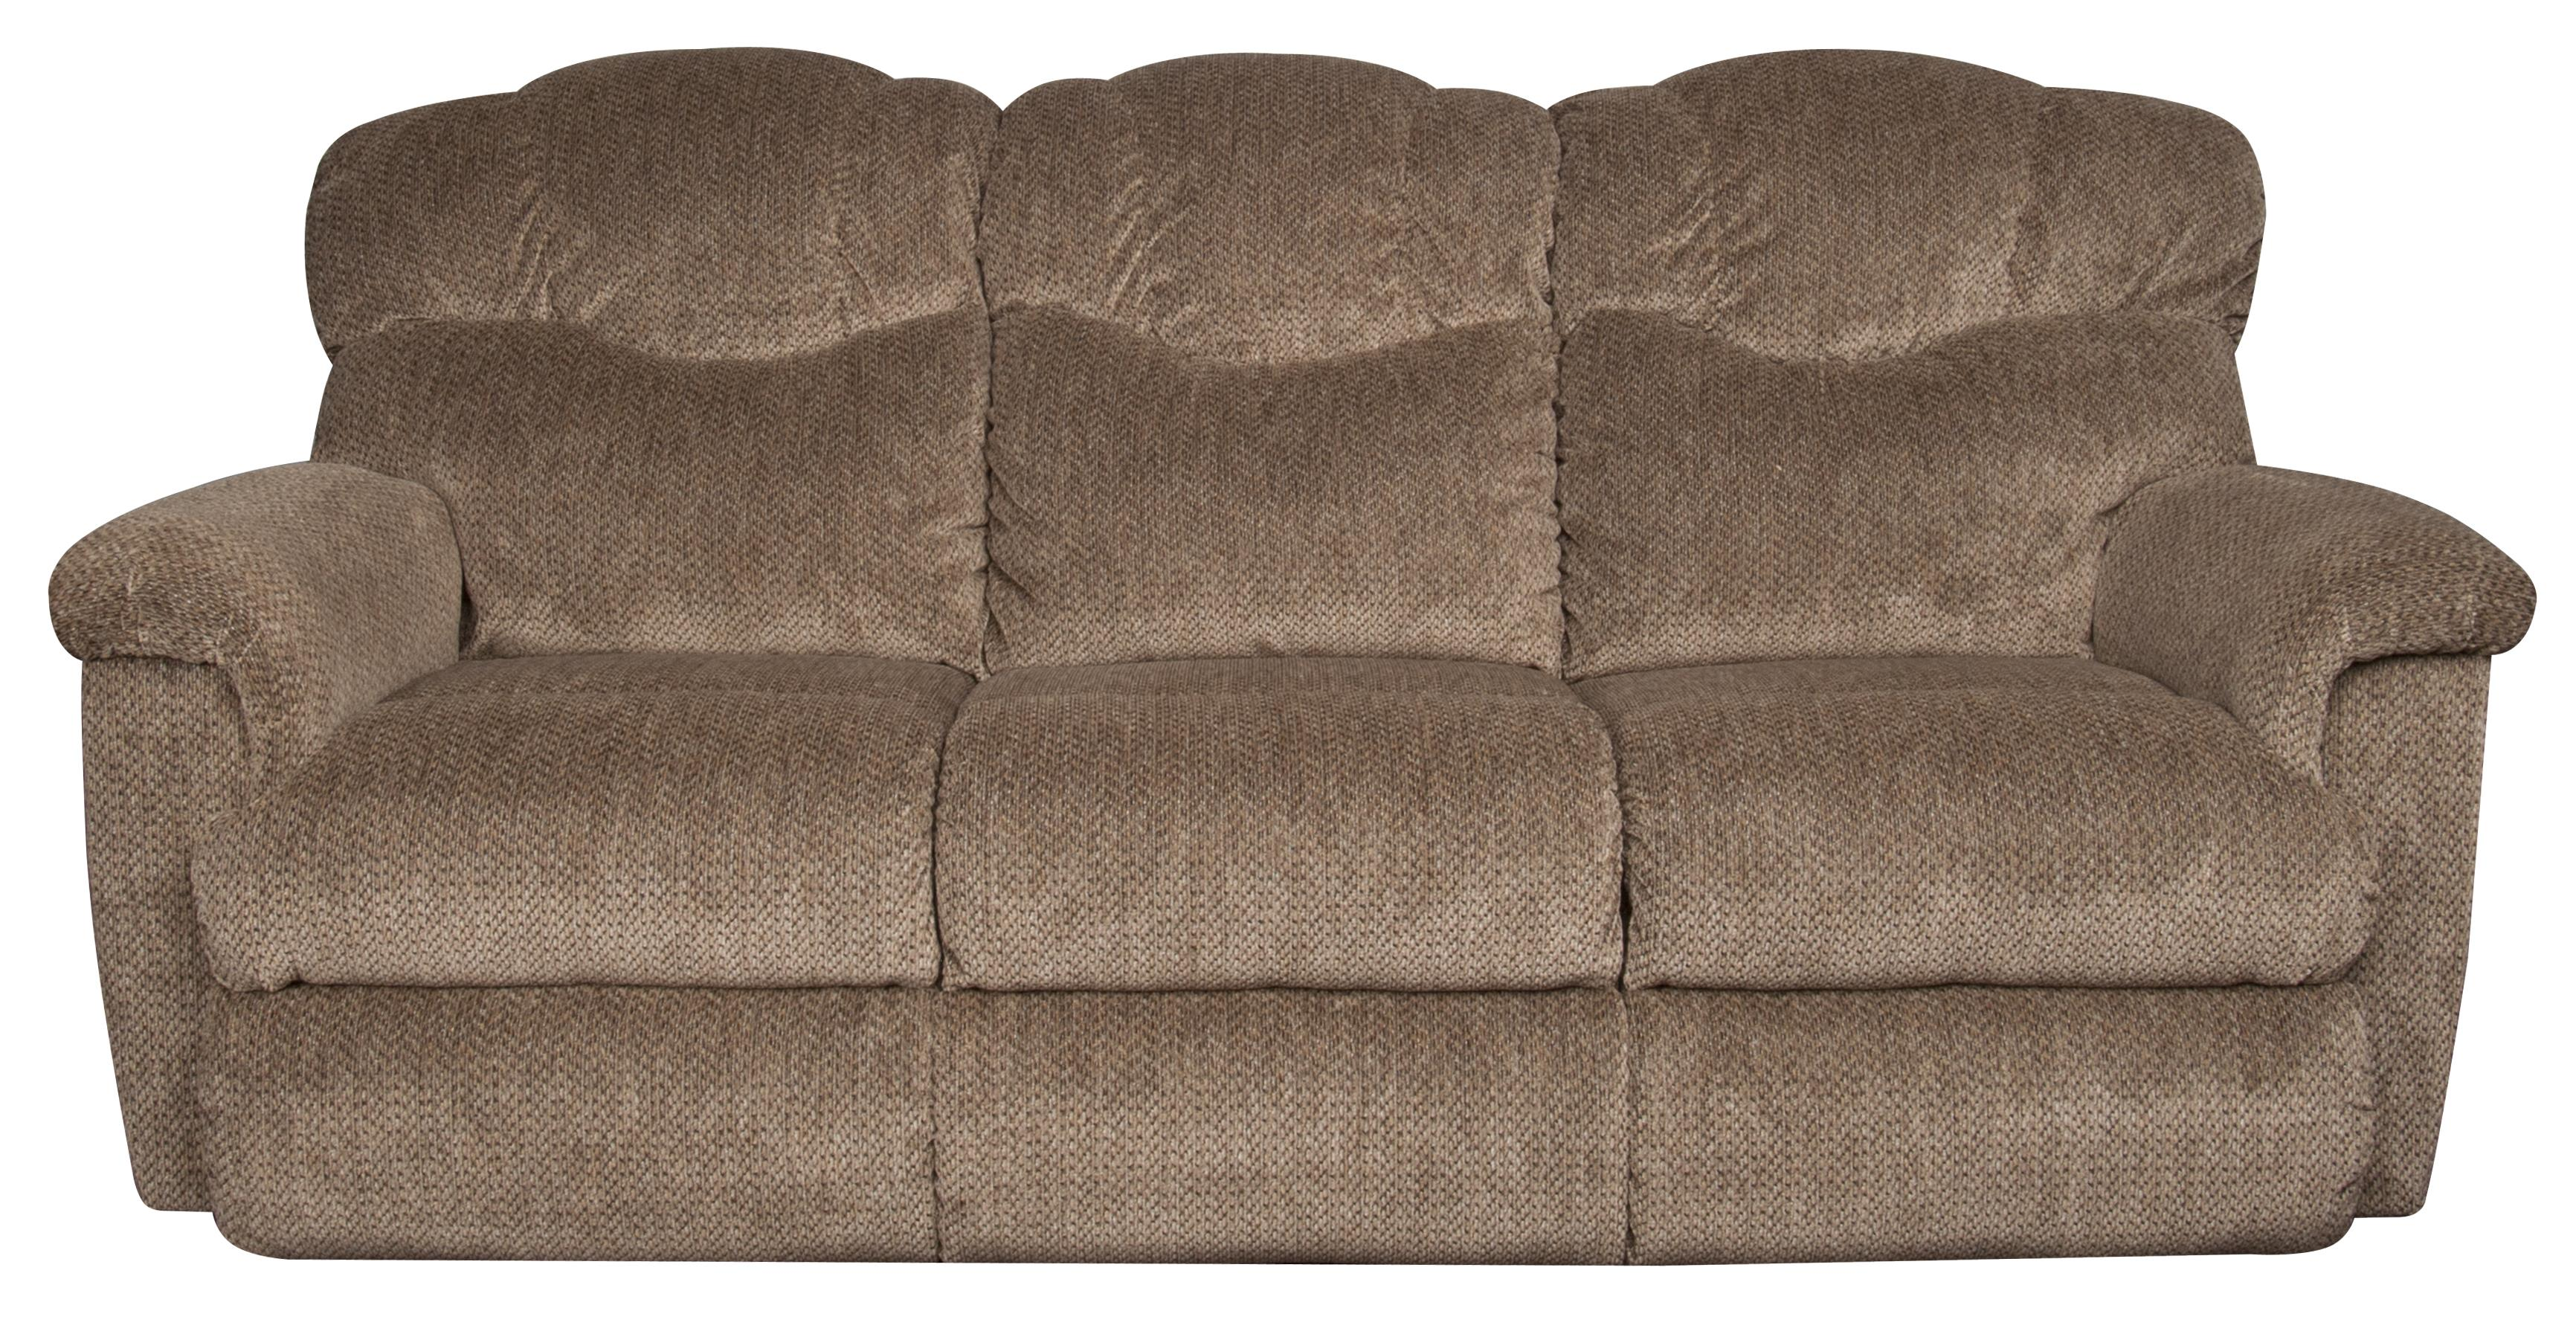 La-Z-Boy Lancer Lancer Reclining Sofa - Item Number: 748449638